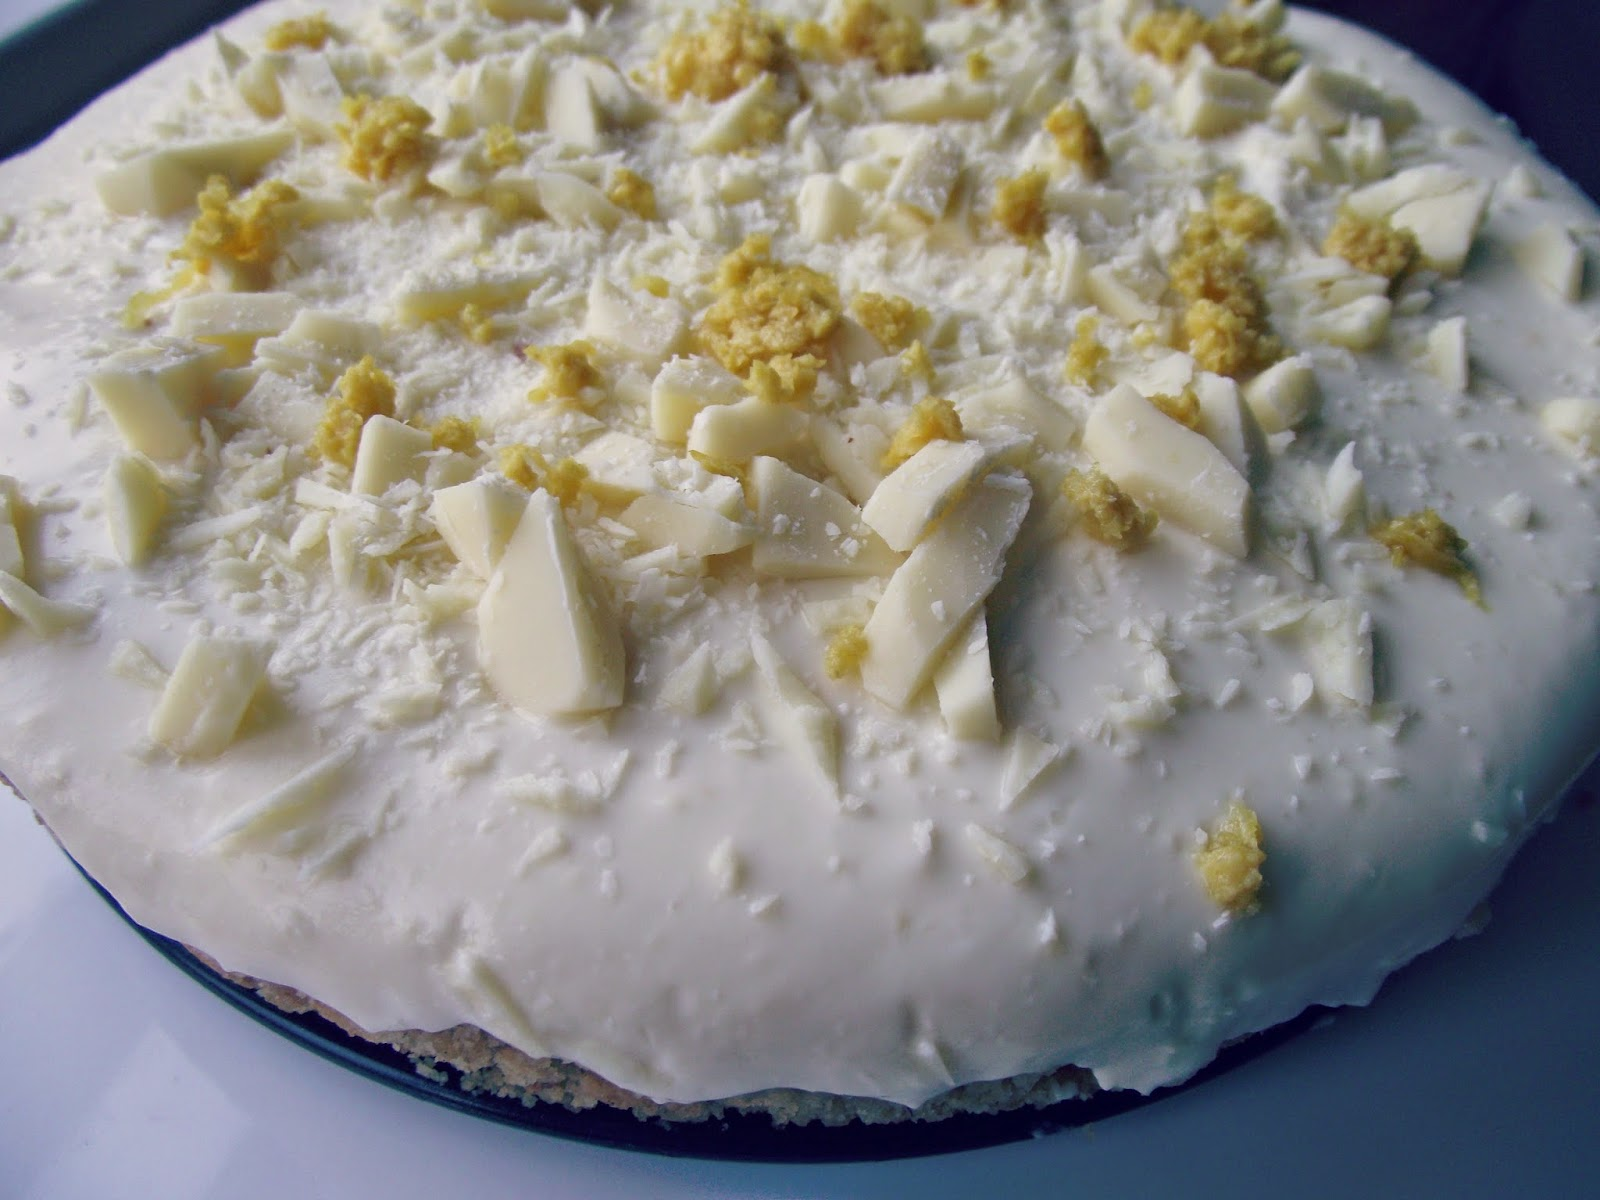 cheesecake,lemon,baking,food,recipe,easy